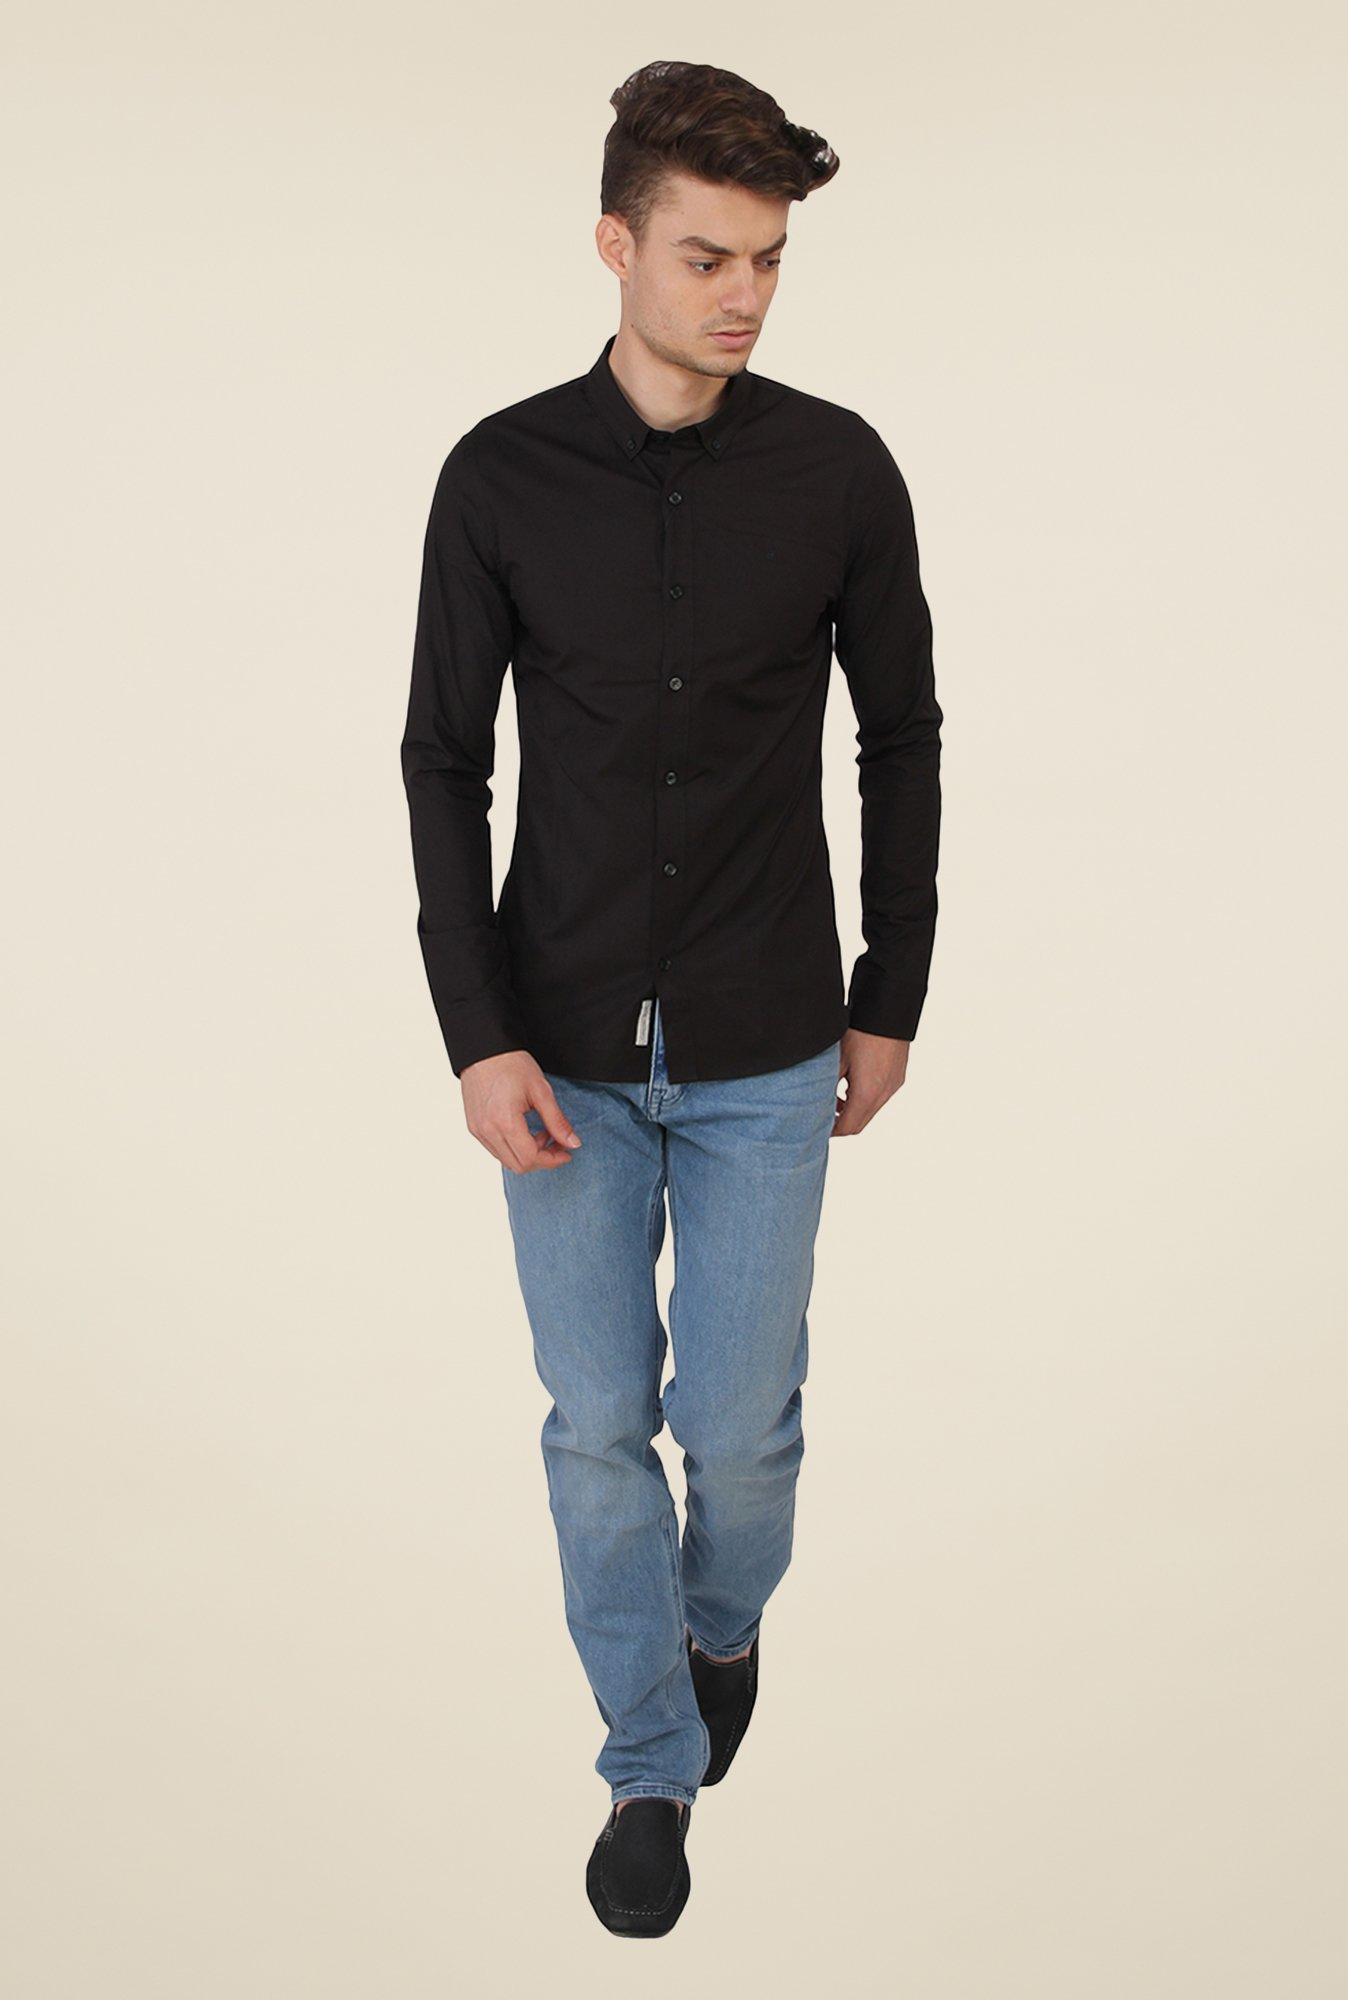 Calvin Klein Black Solid Shirt